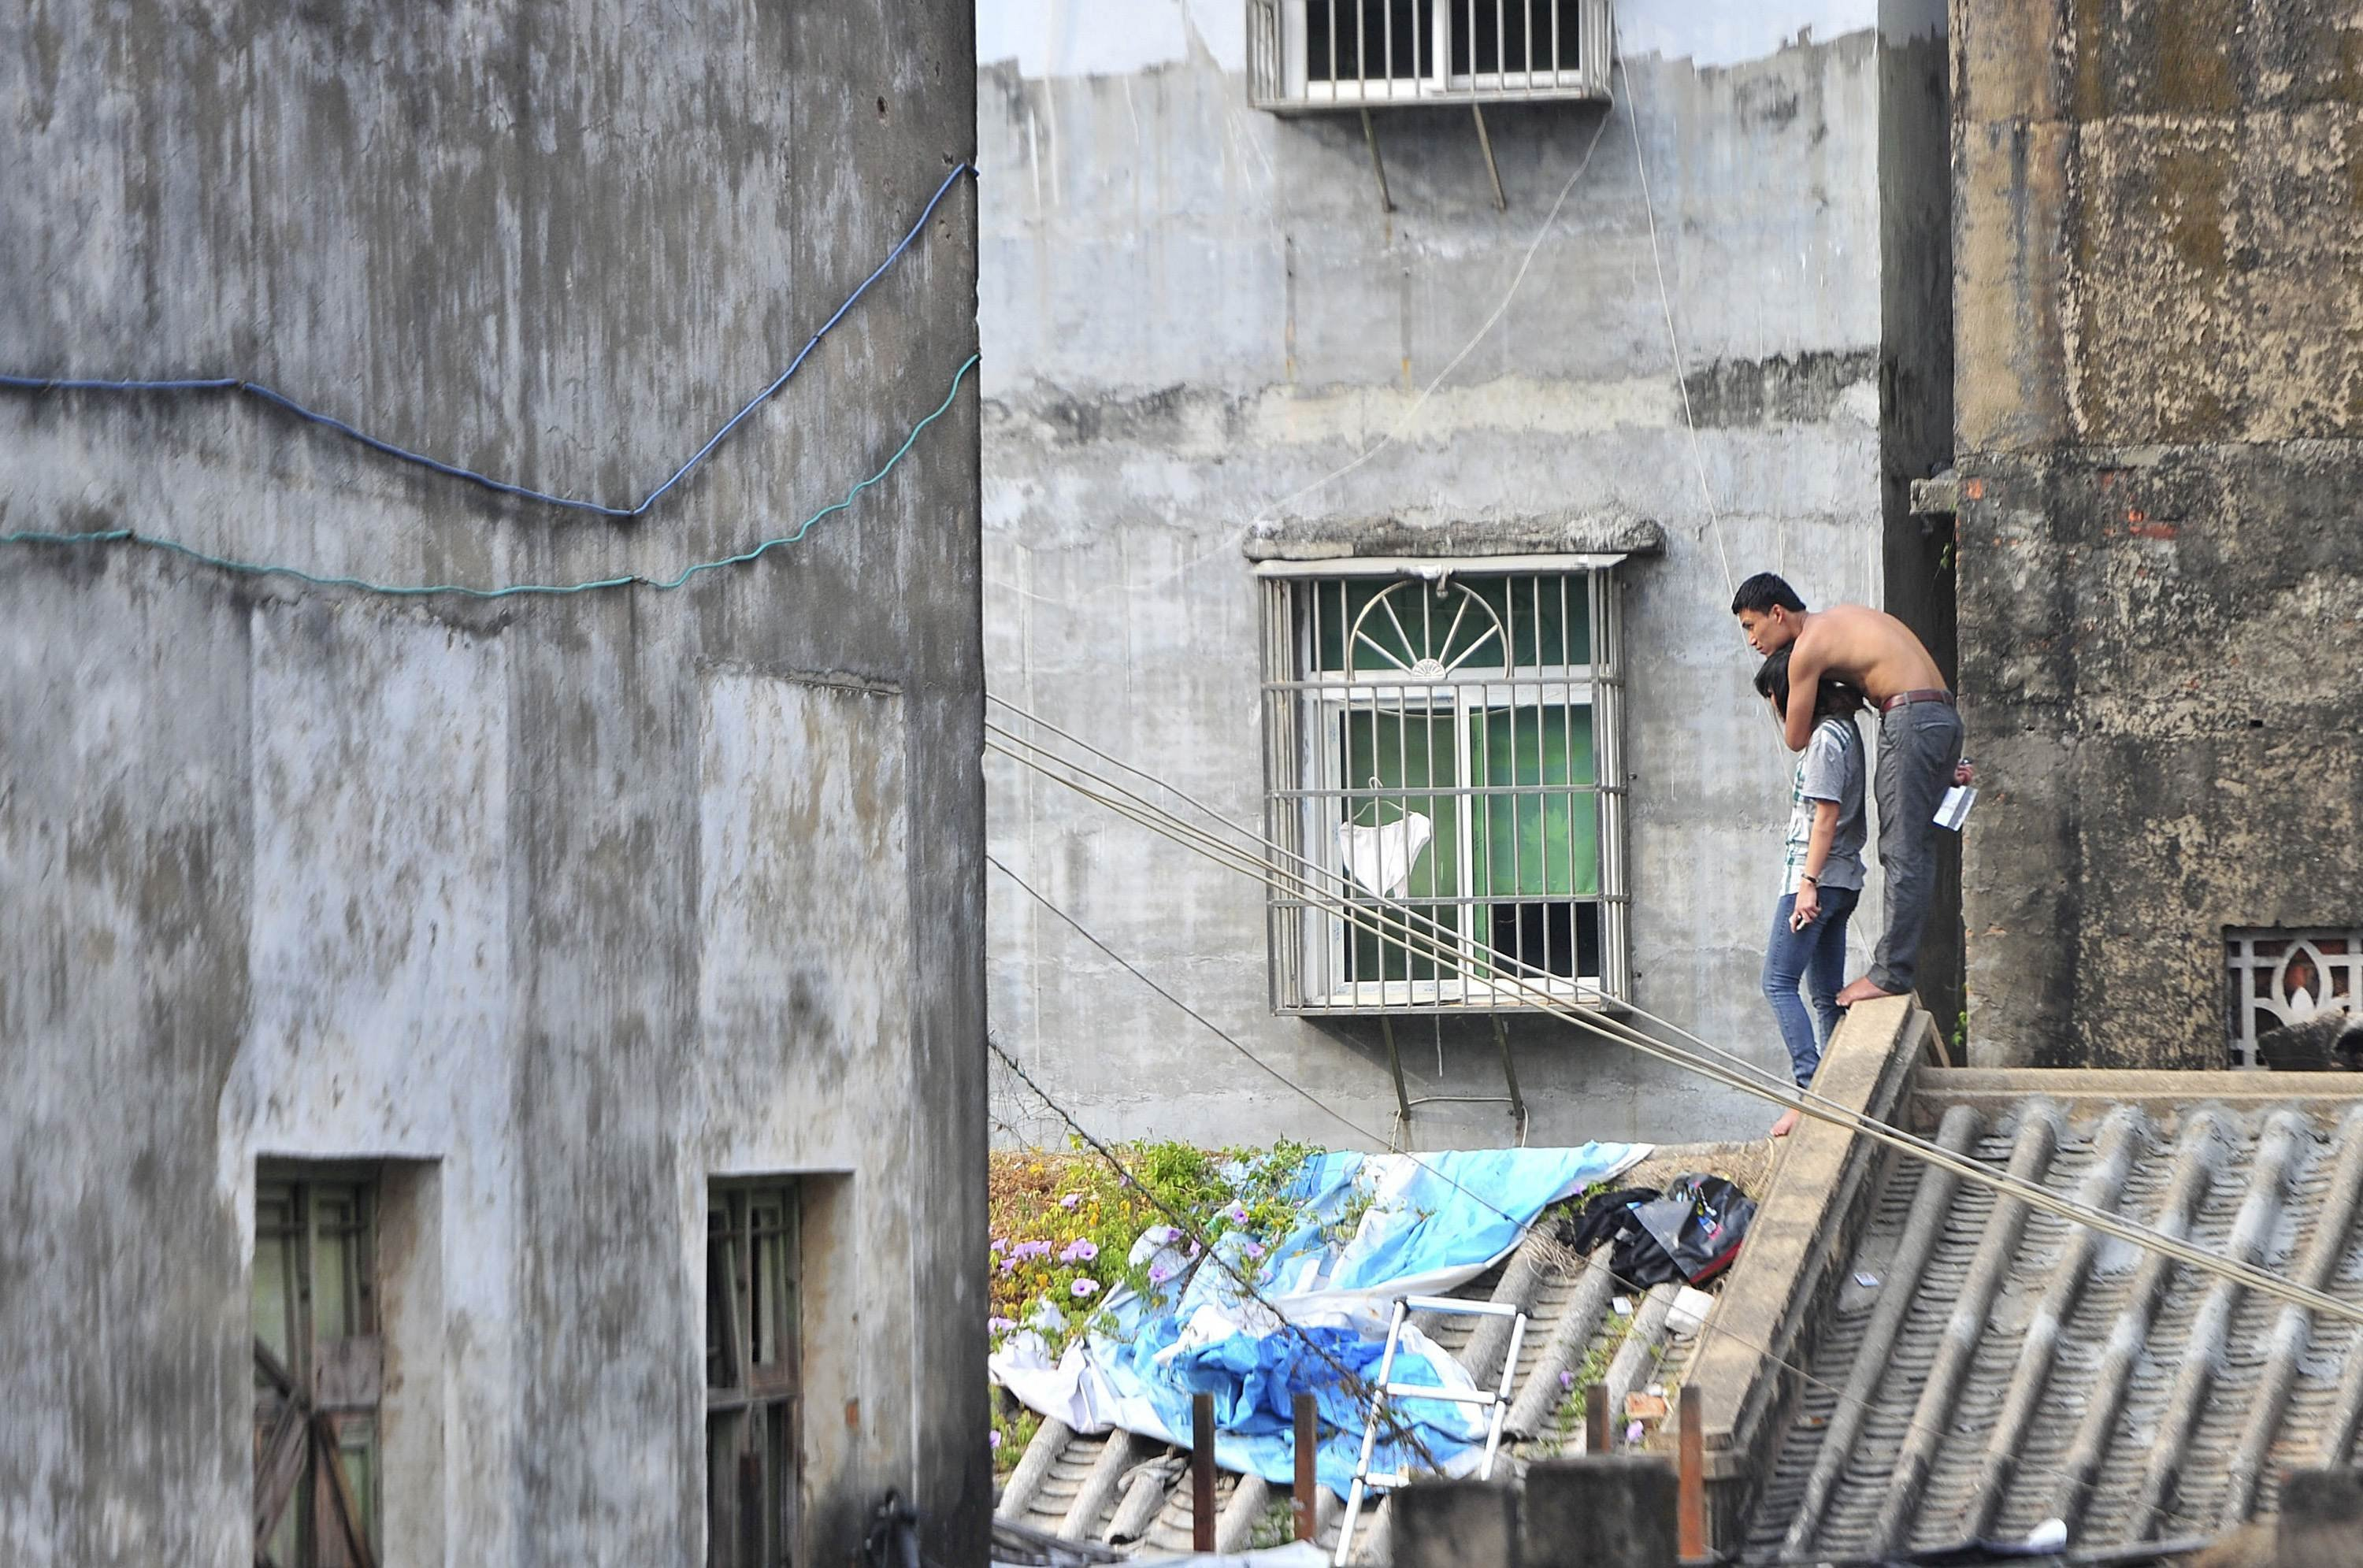 A topless man holds his girlfriend hostage with a knife atop a residential building in Sanya, Hainan province, Jan. 20, 2014. According to local media, the man, surnamed Lin, held his girlfriend hostage to threaten both families into allowing their marriage. Lin stood off with police on the roof for several hours and was arrested soon after he got down the building.